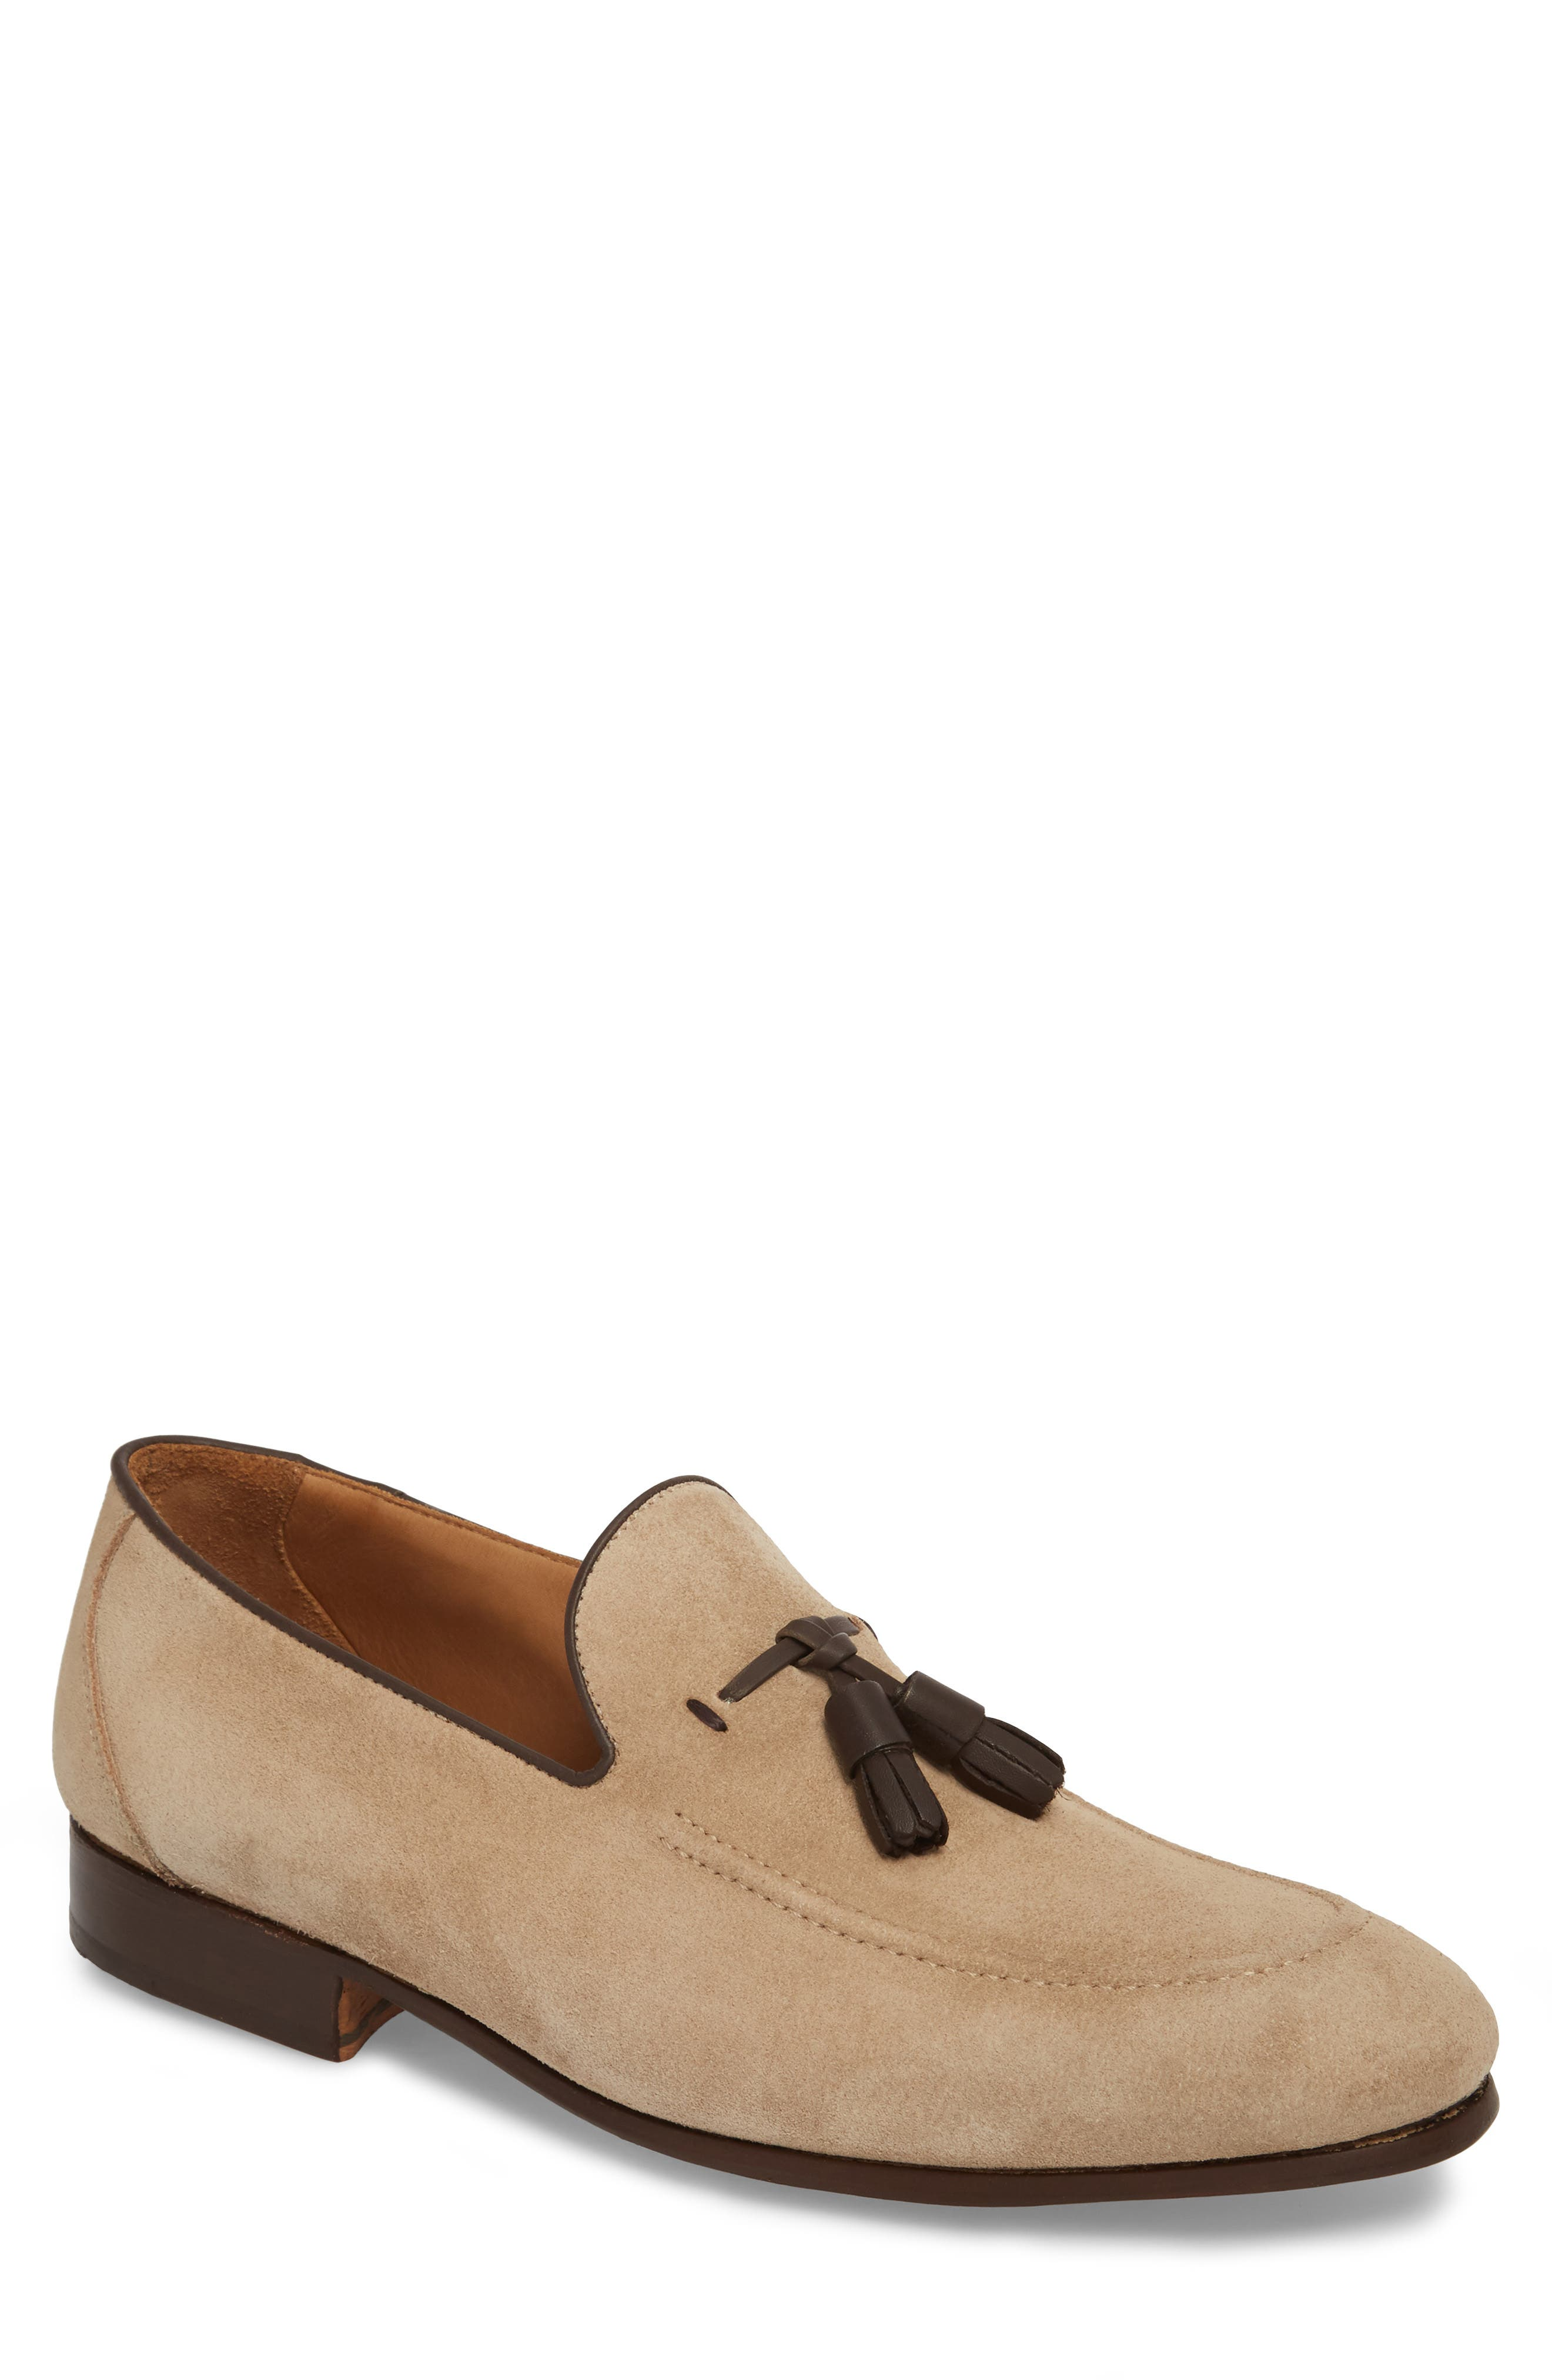 Ario Tassel Loafer,                             Main thumbnail 1, color,                             Sand Suede